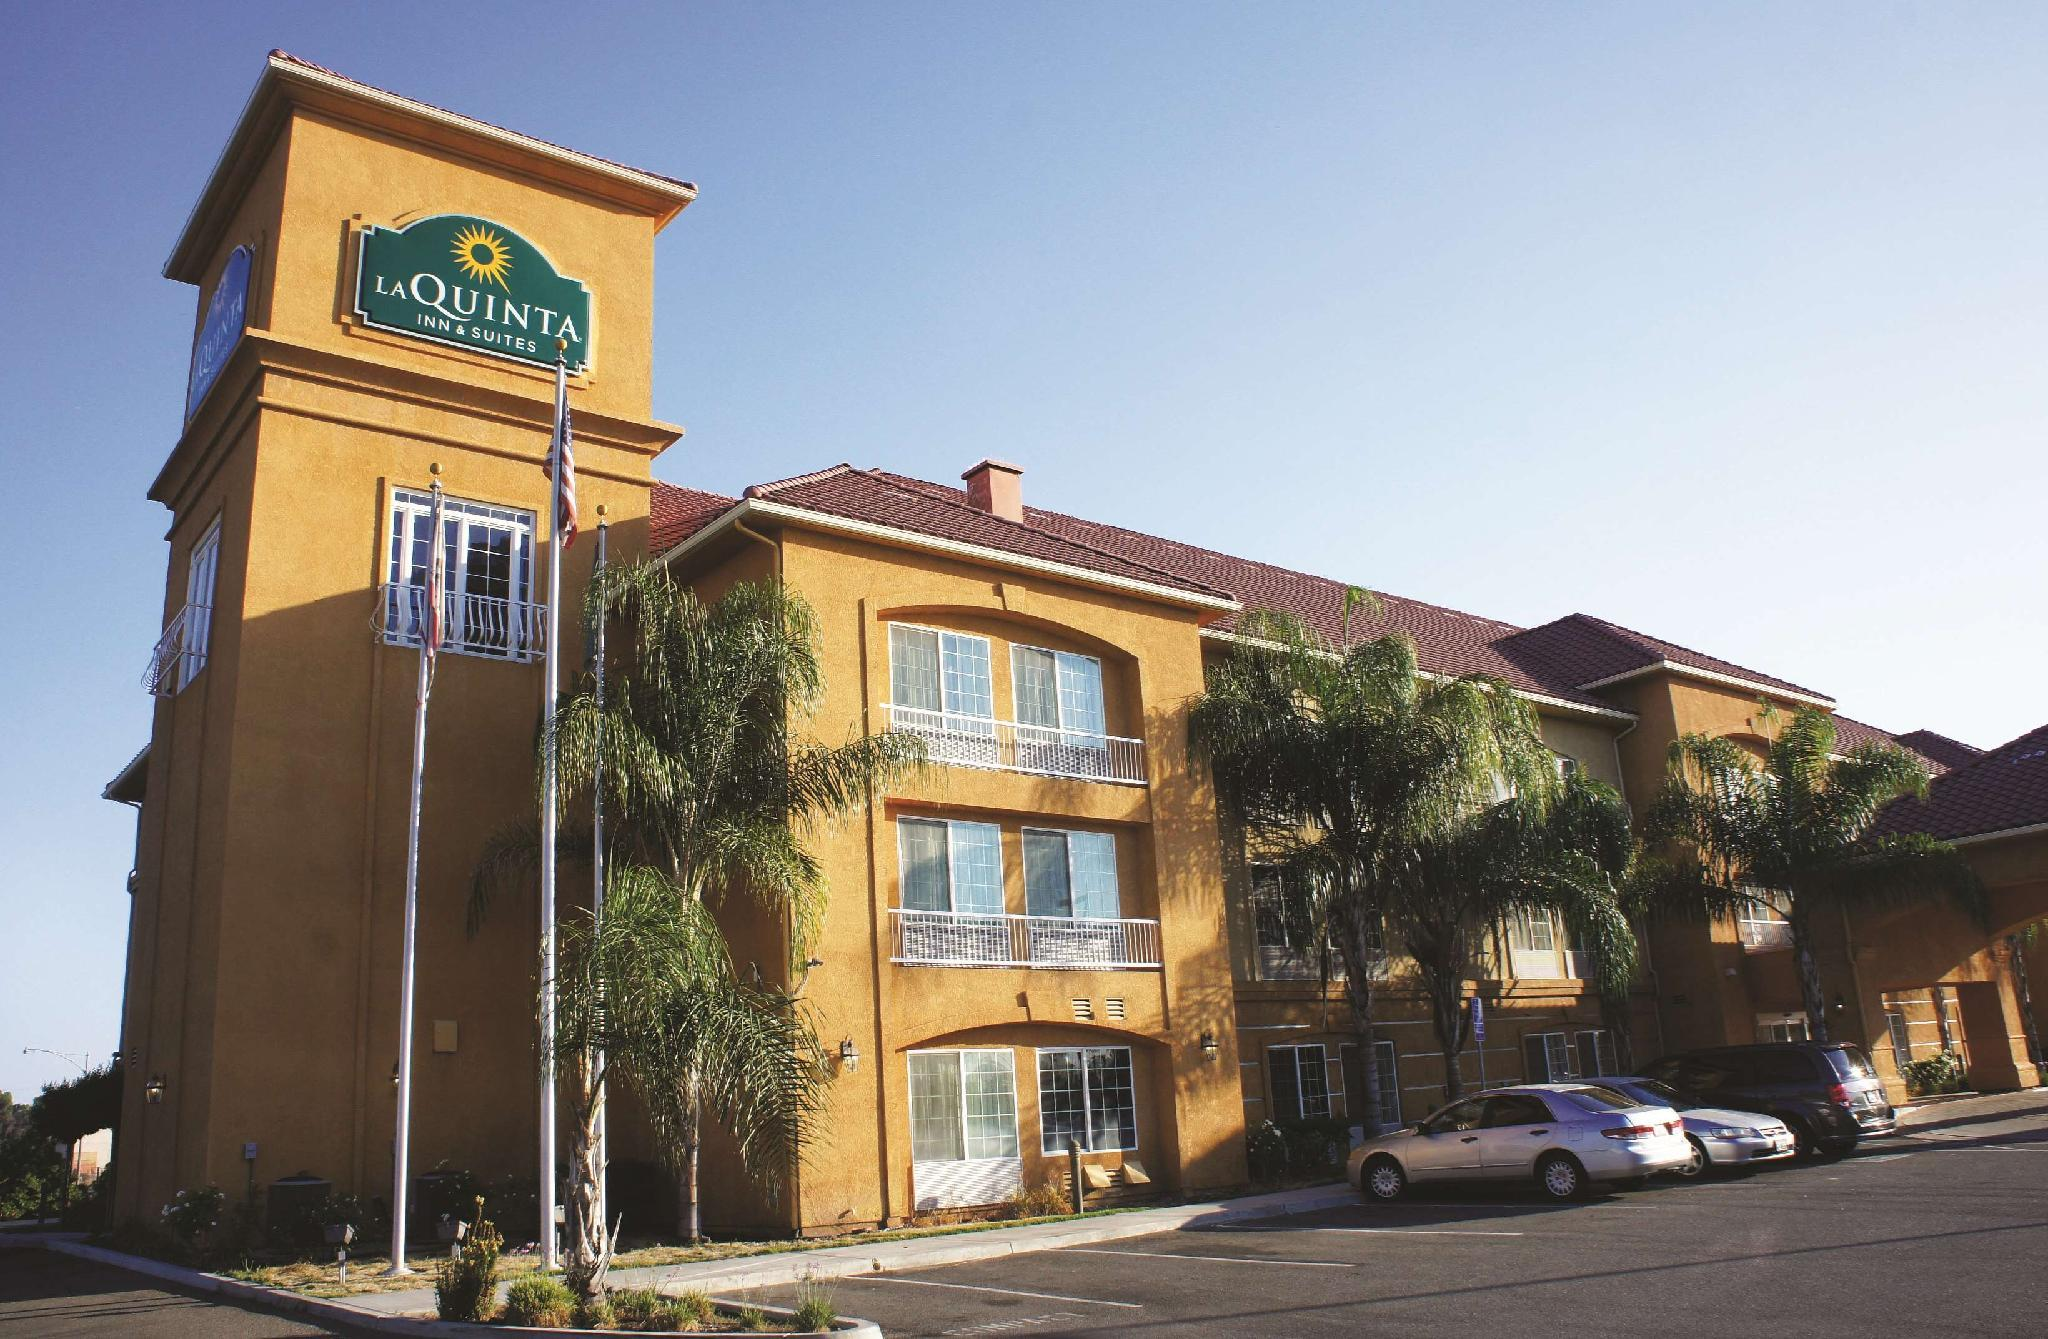 La Quinta Inn And Suites By Wyndham Fowler